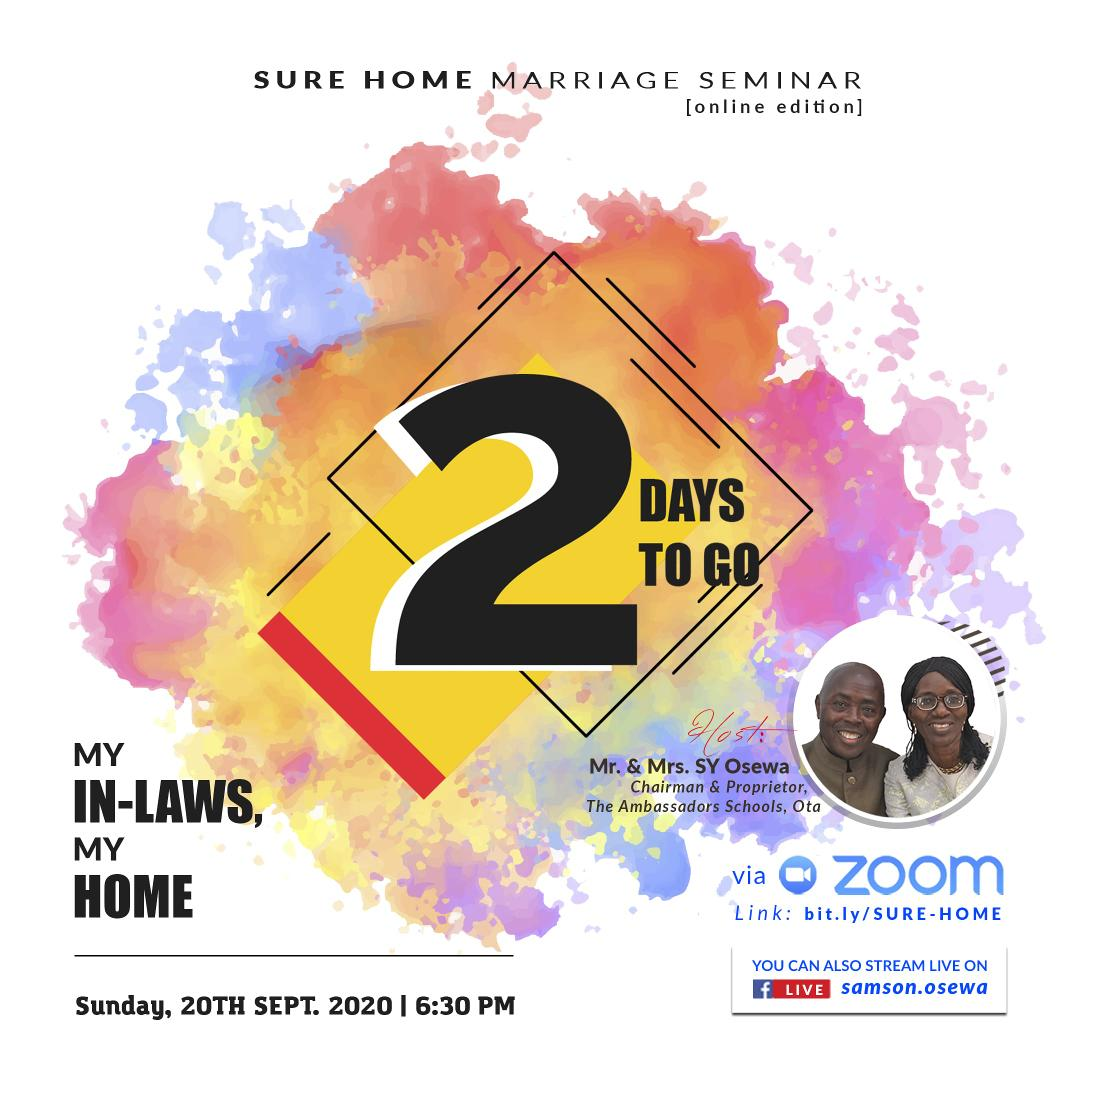 FREE MARRIAGE WEBINAR Married couples, dont miss this. Singles, join to learn. Join the Chairman and the Proprietor of The Ambassadors Schools, Mr Yomi & Mrs Victoria Osewa, in a Marriage Webinar tagged: My In-Laws, My Home on Sunday 20th of September by 6:30pm (WAT).